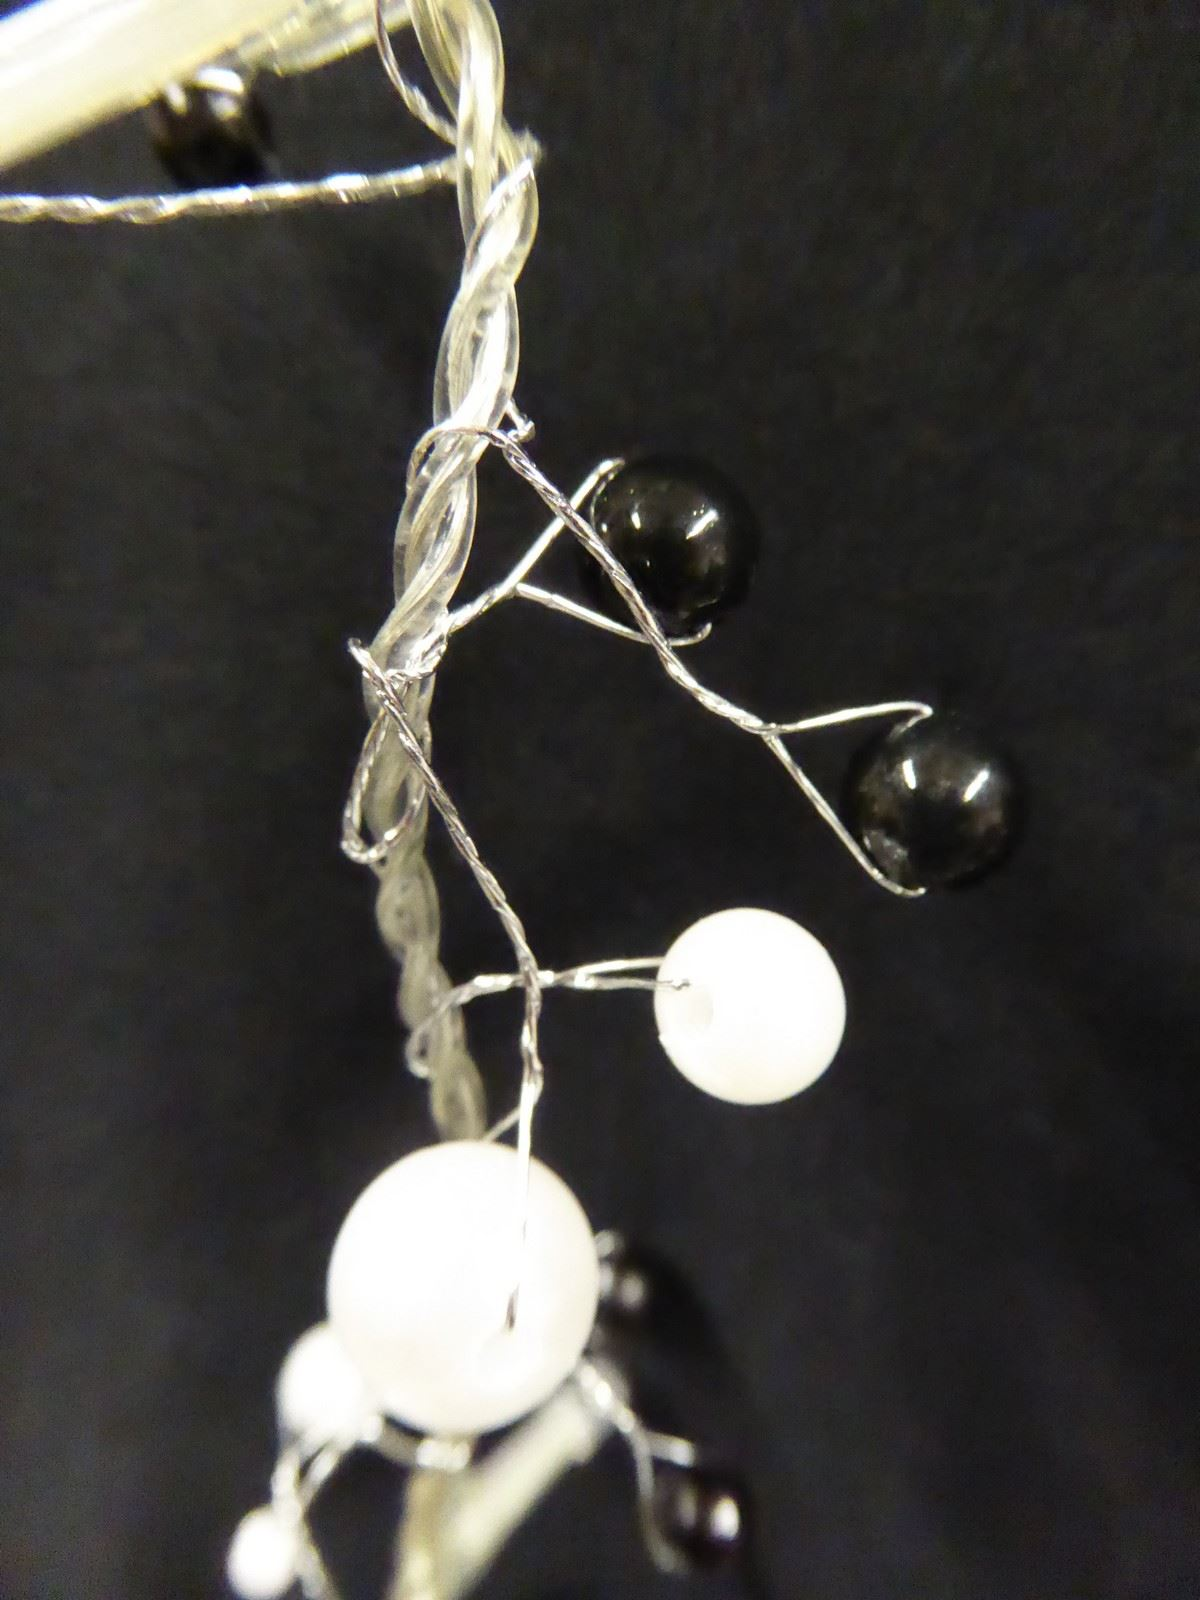 6ft-1-8m-Berry-Twig-Artificial-Christmas-Garland-With-Lights-Decoration thumbnail 22